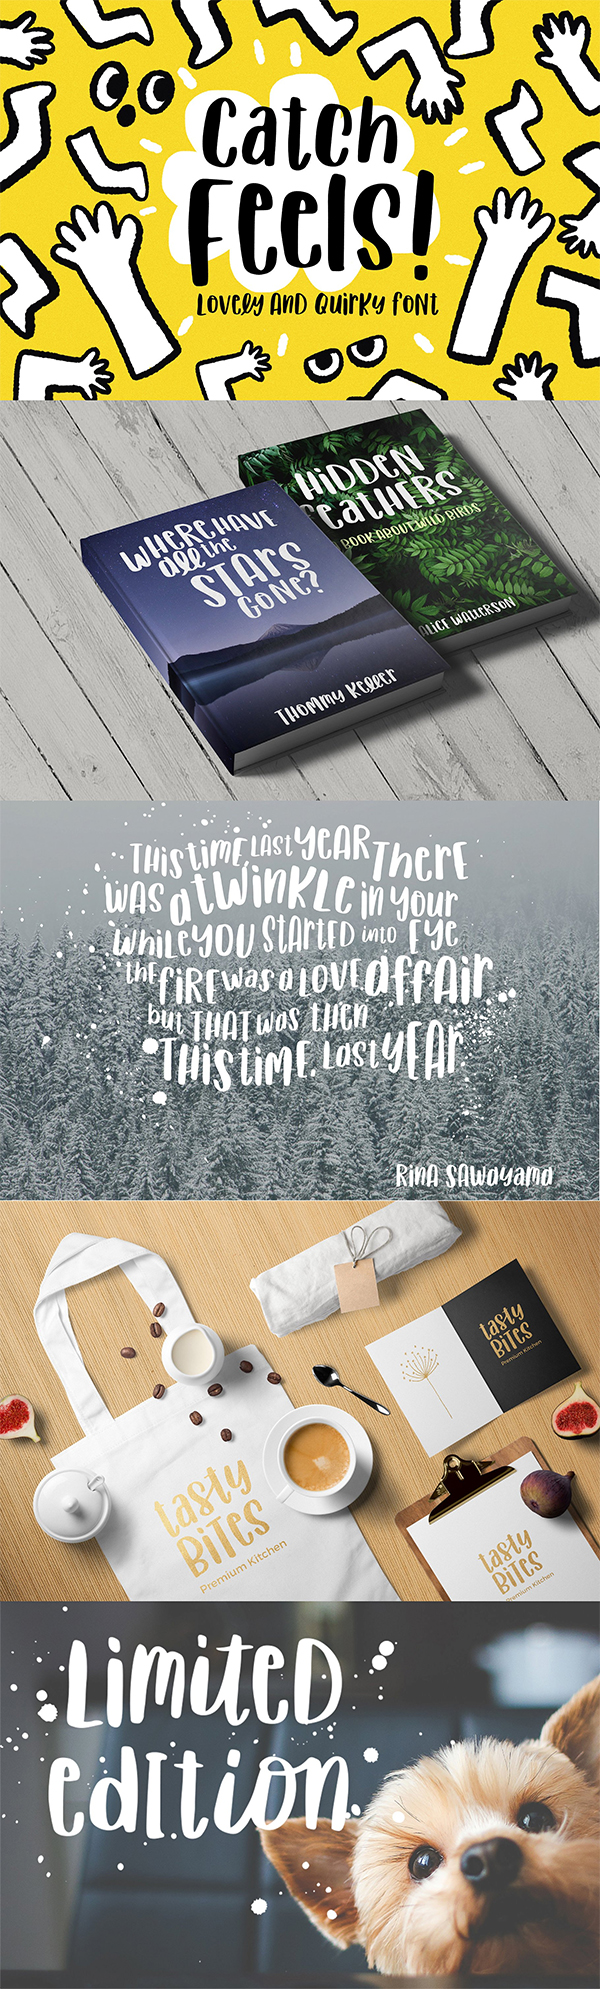 Catch Feels - Lovely and Quirky Free Font